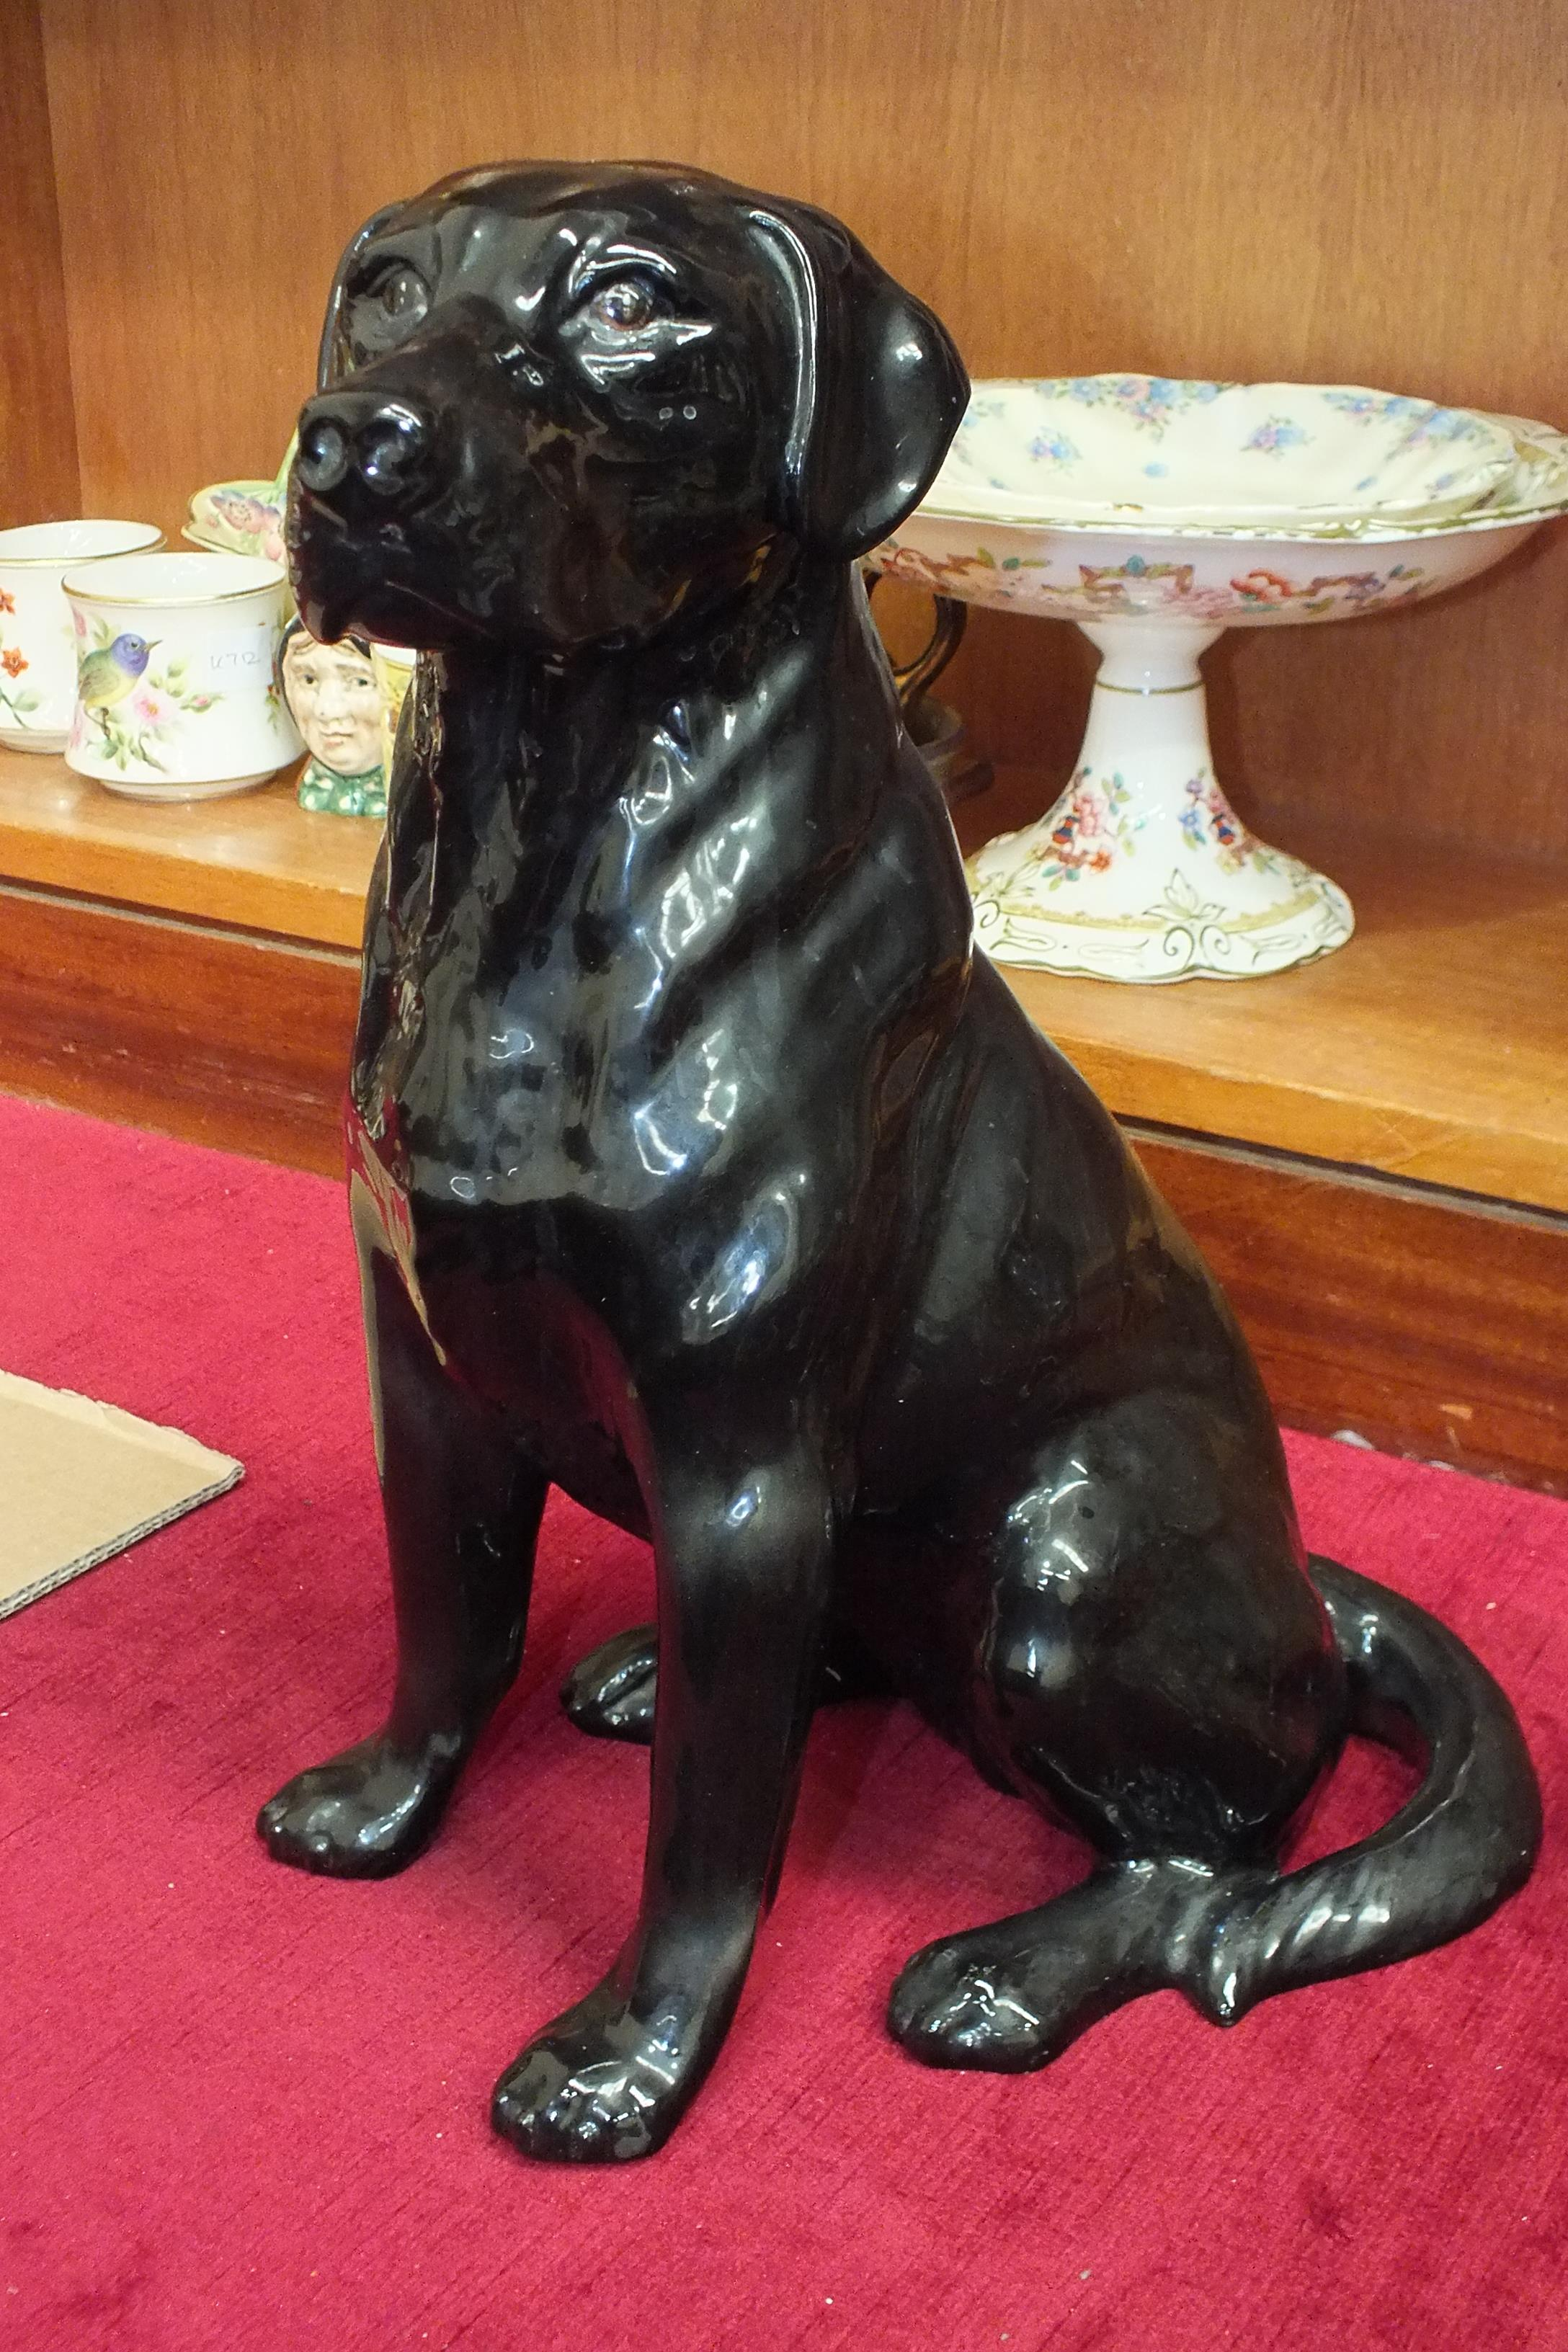 Lot 133 - A Beswick large model of a Black Labrador 2314, 34cm high.